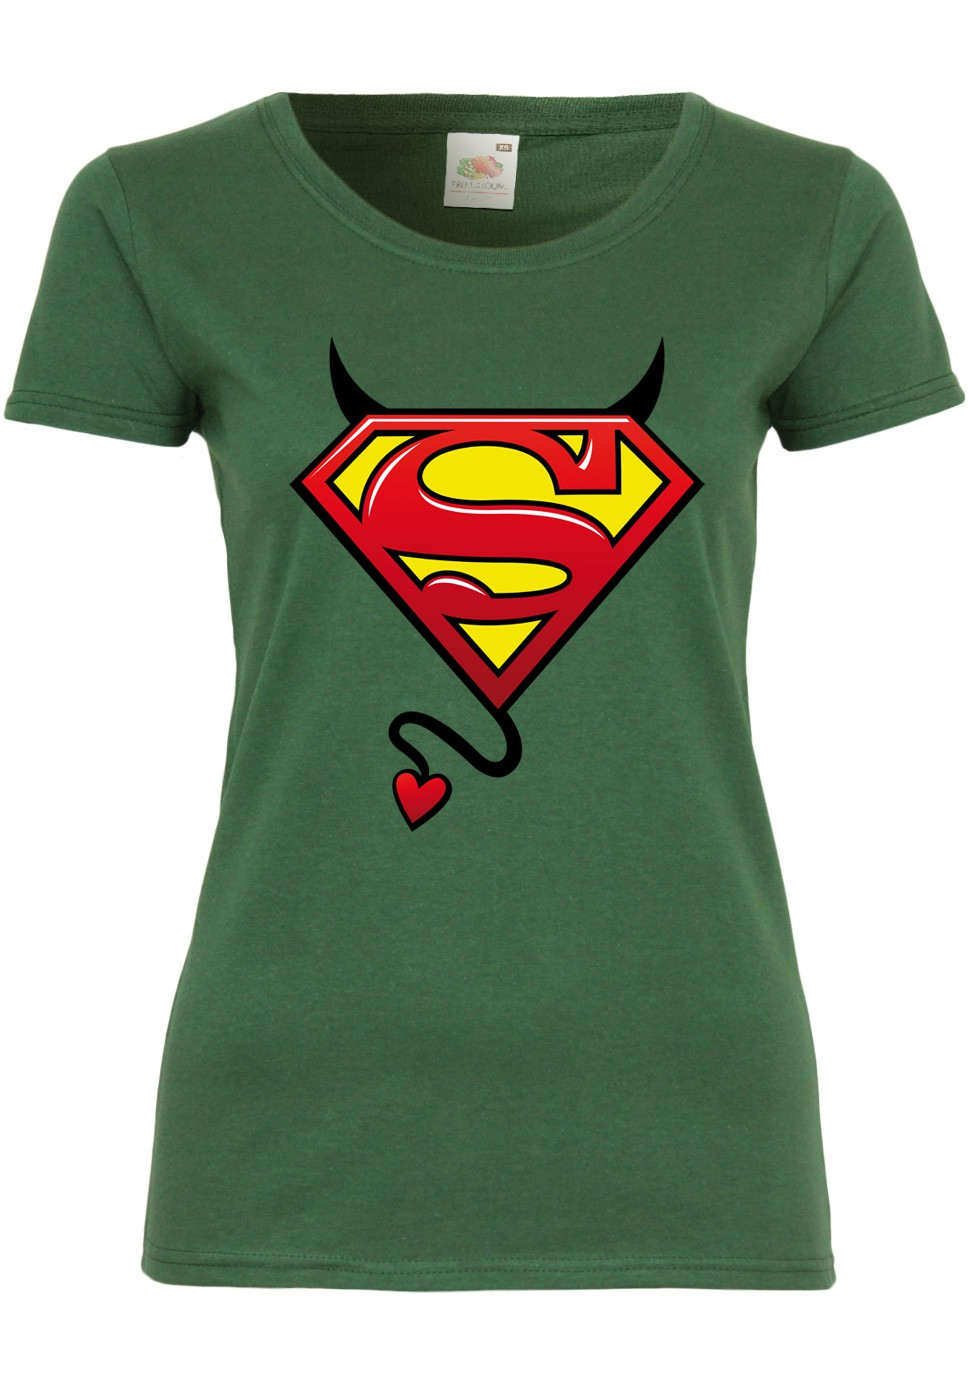 M132 F288N Damen T-Shirt mit Motiv Evil SupermanComic Superheld Print Kurzarm